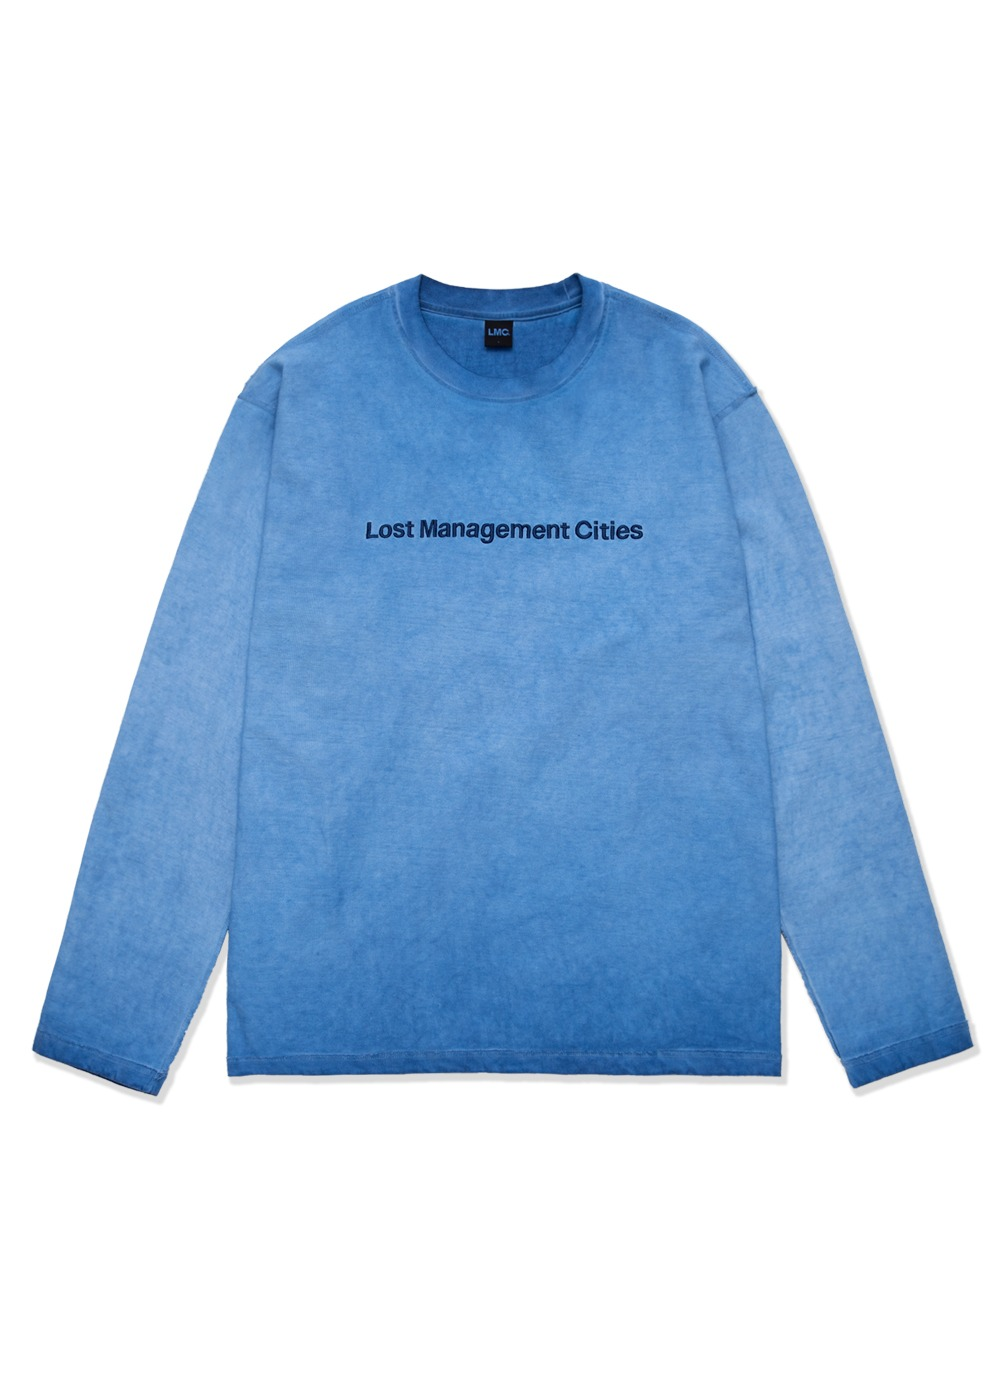 LMC OVERDYED TED FN LONG SLV TEE blue